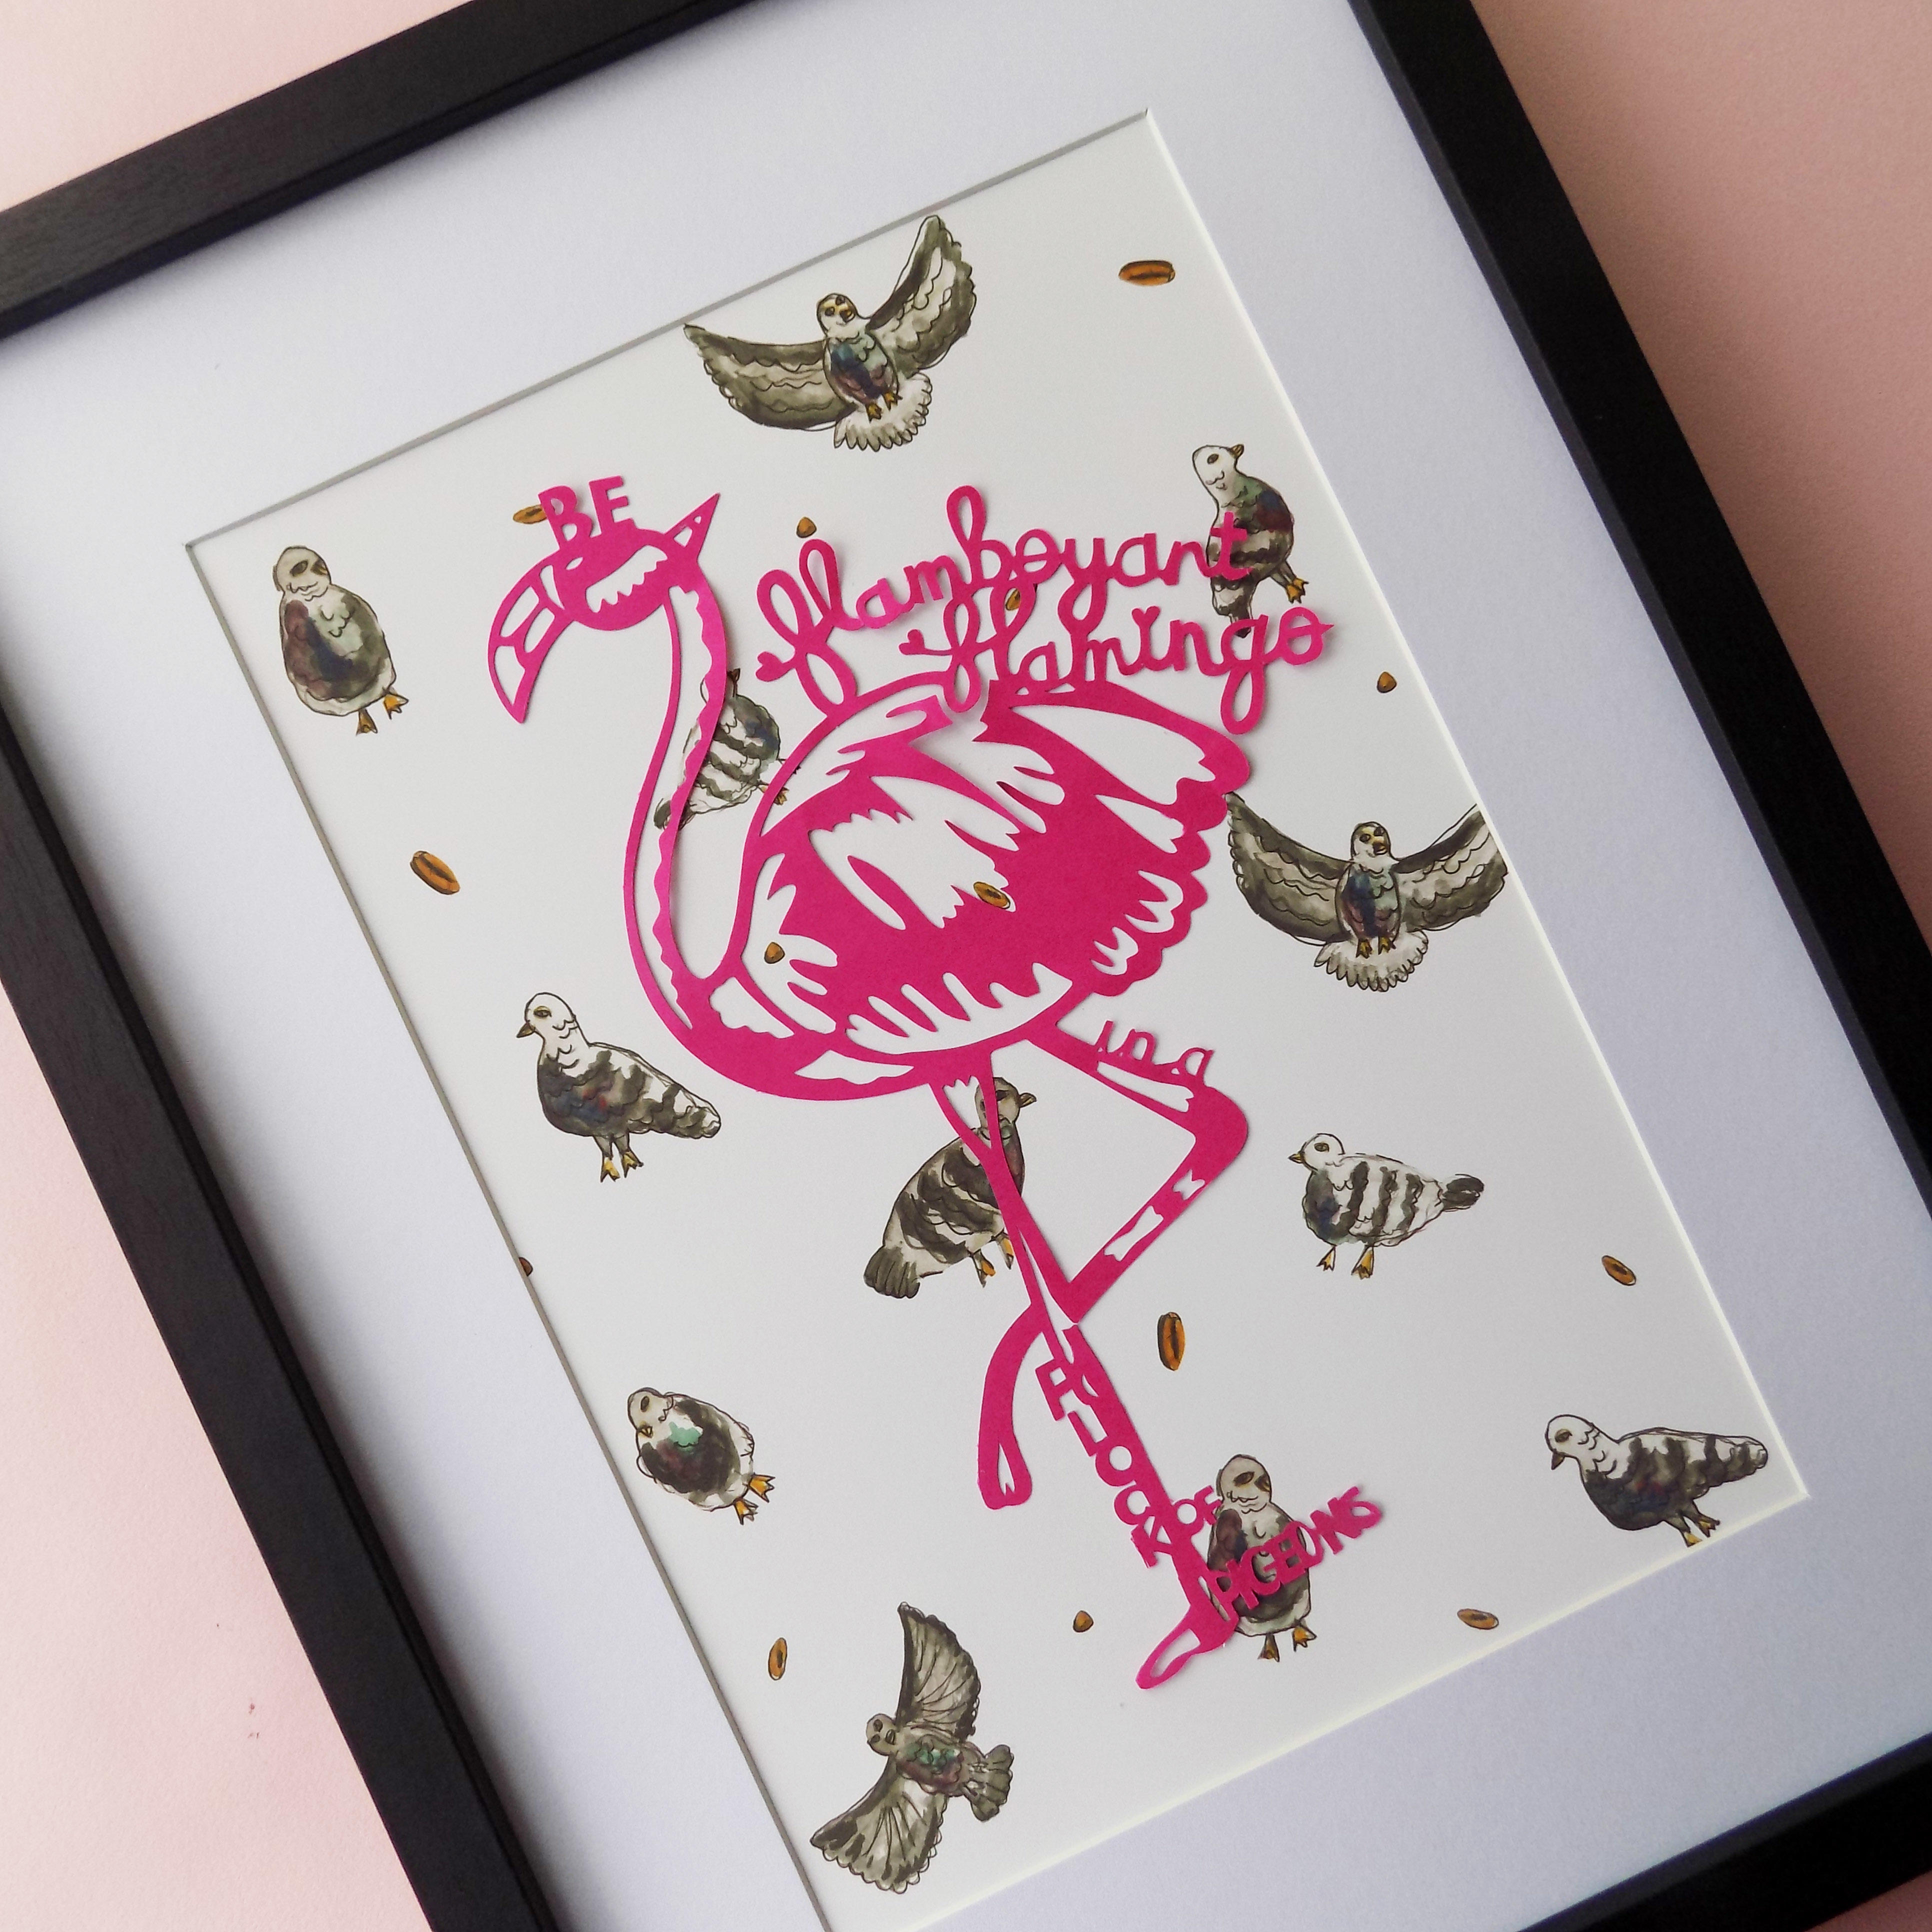 A close up of a paper cut flamingo